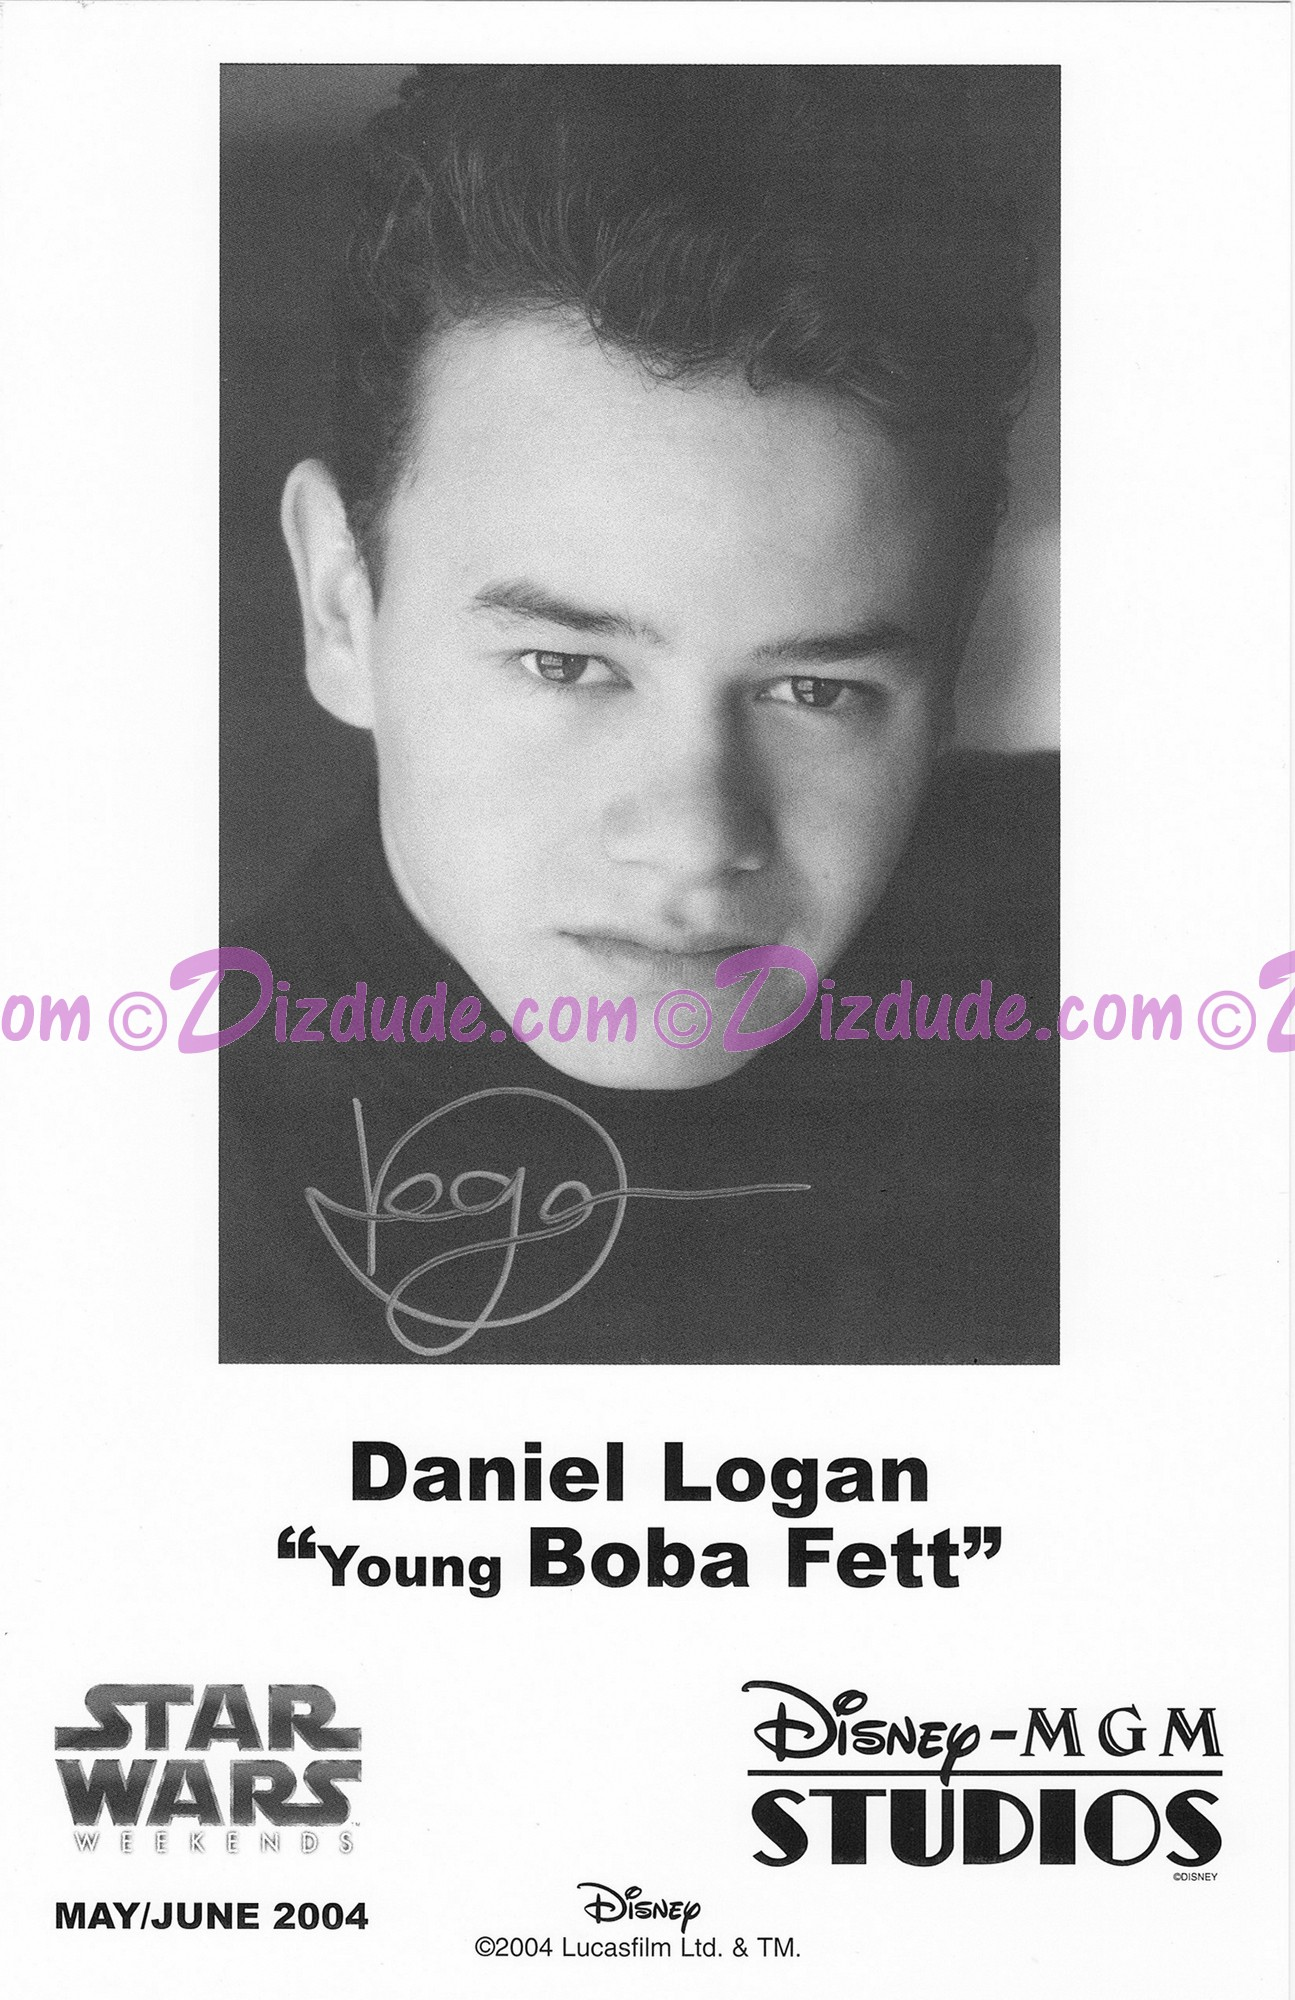 Daniel Logan who played Young Boba Fett Presigned Official Star Wars Weekends 2004 Celebrity Collector Photo © Dizdude.com